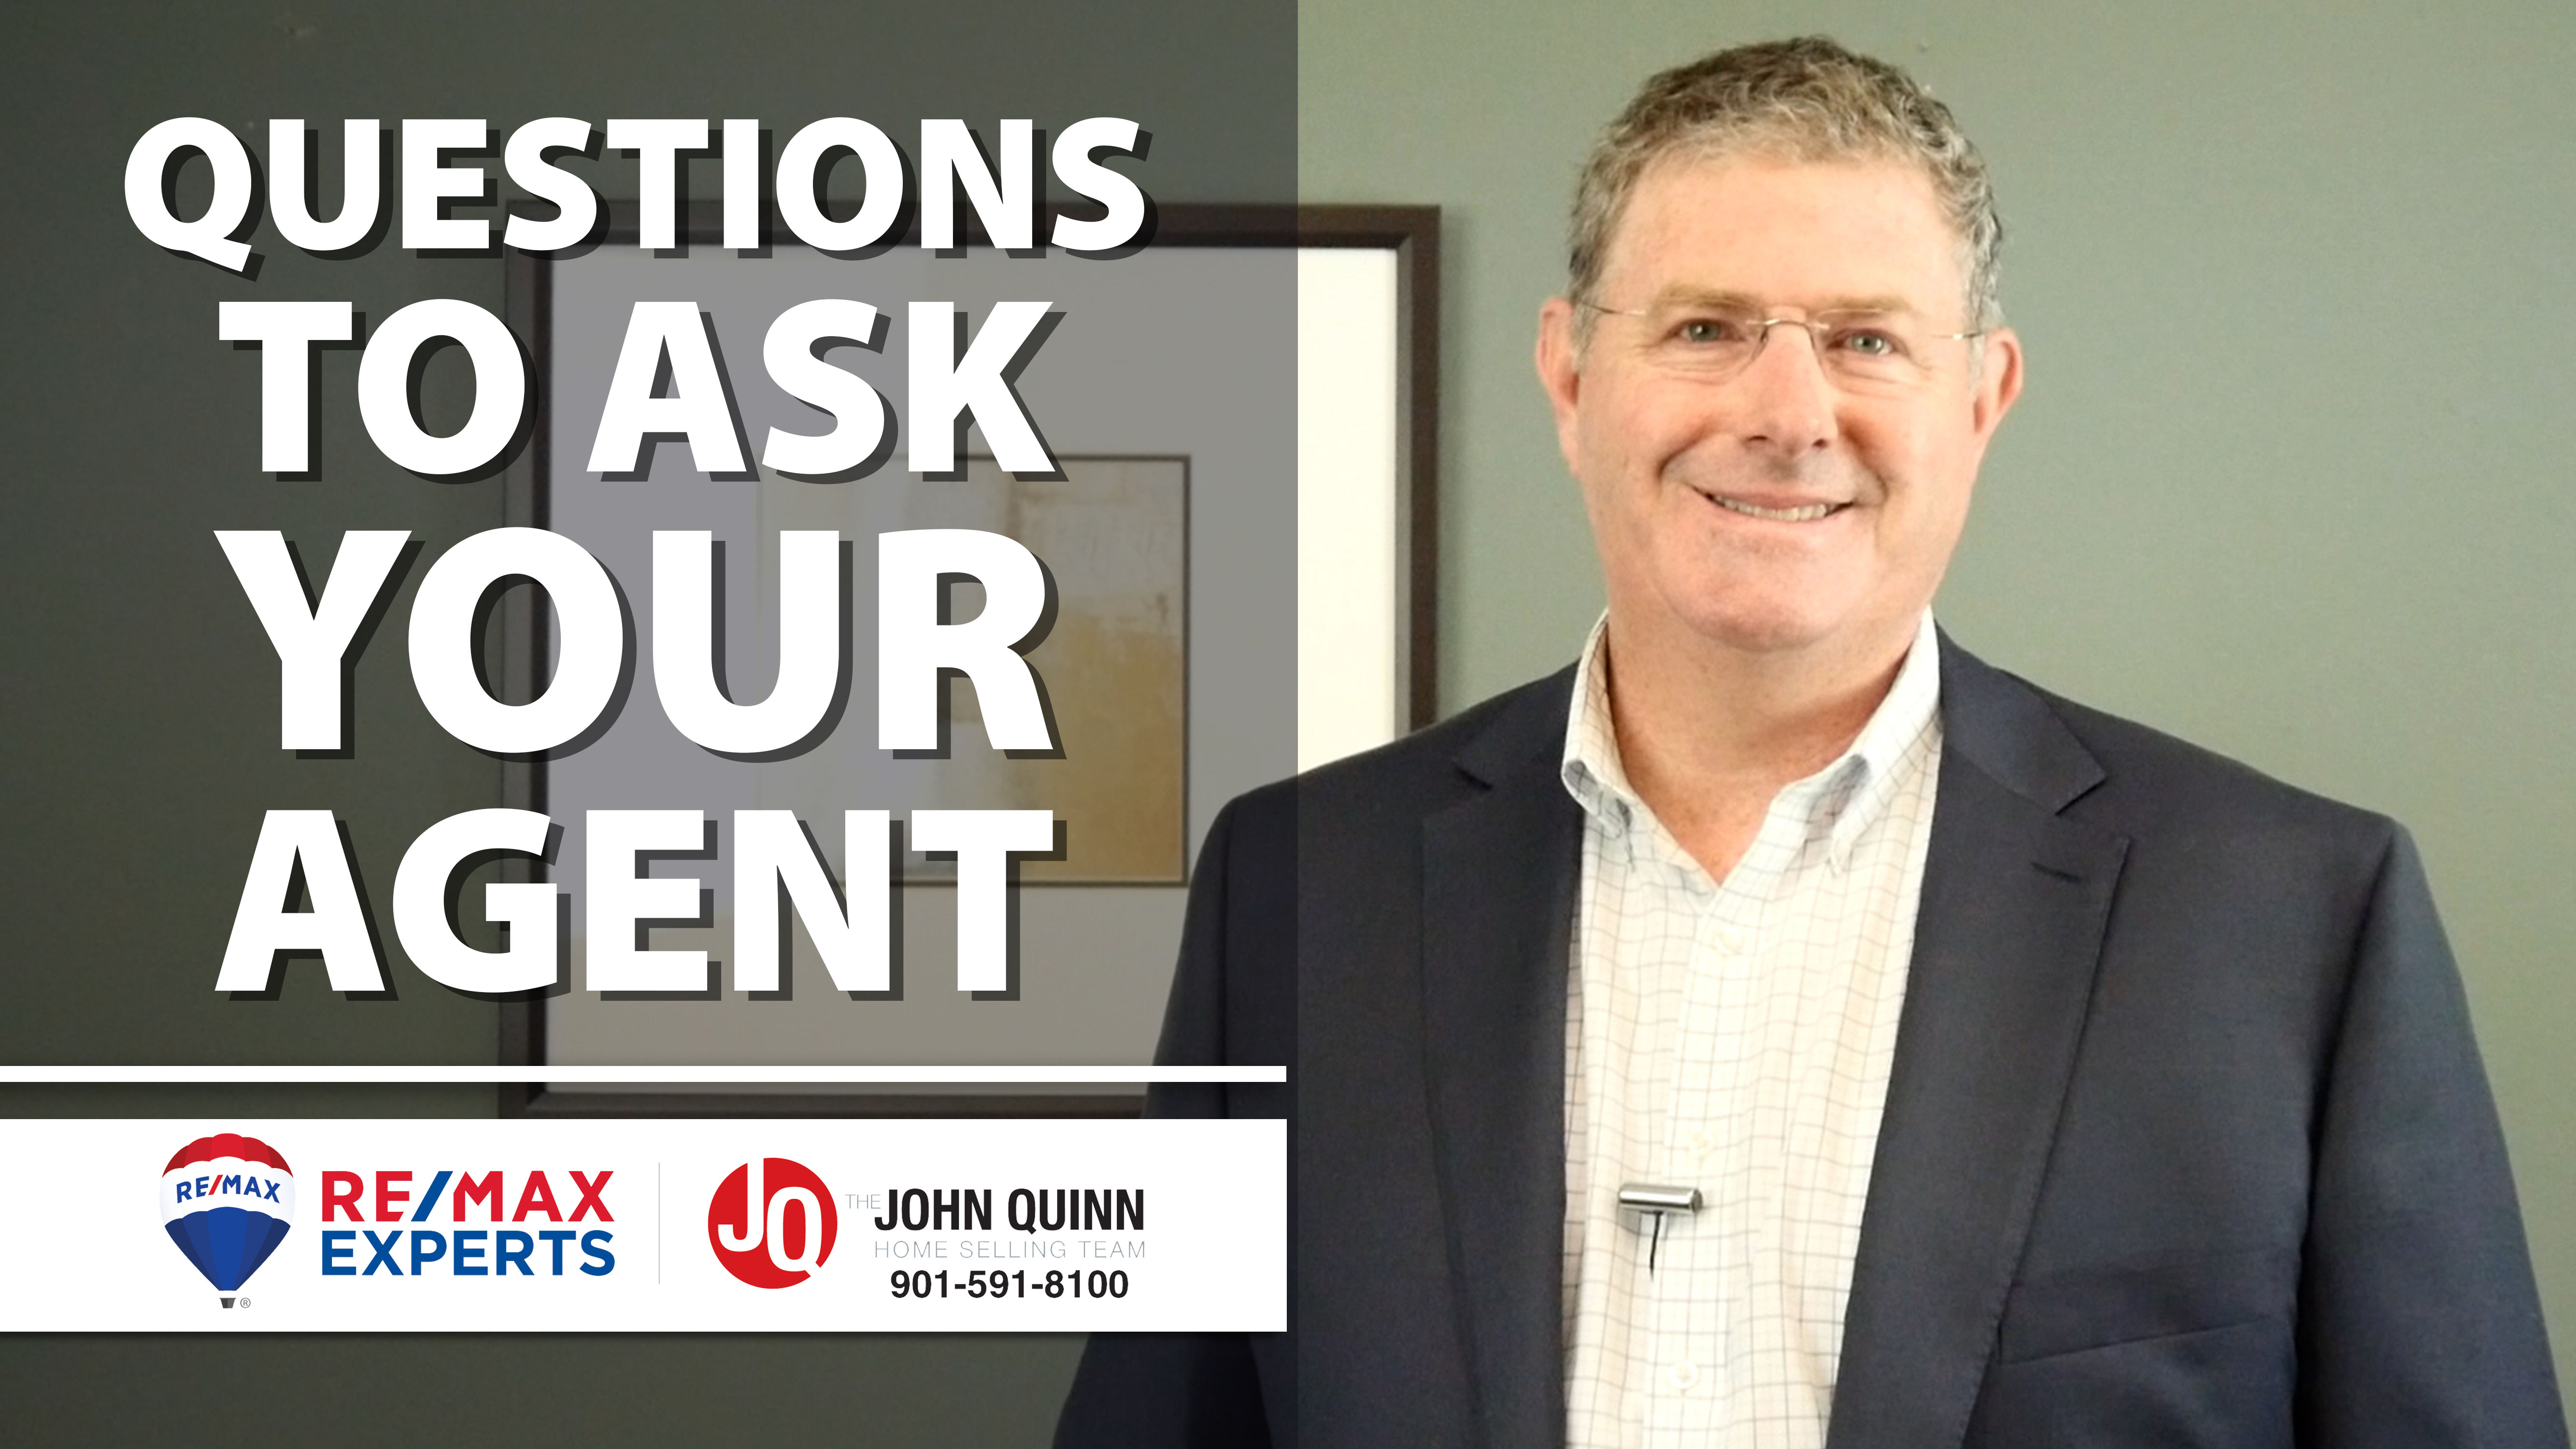 Q: What Questions Should I Ask My Agent?